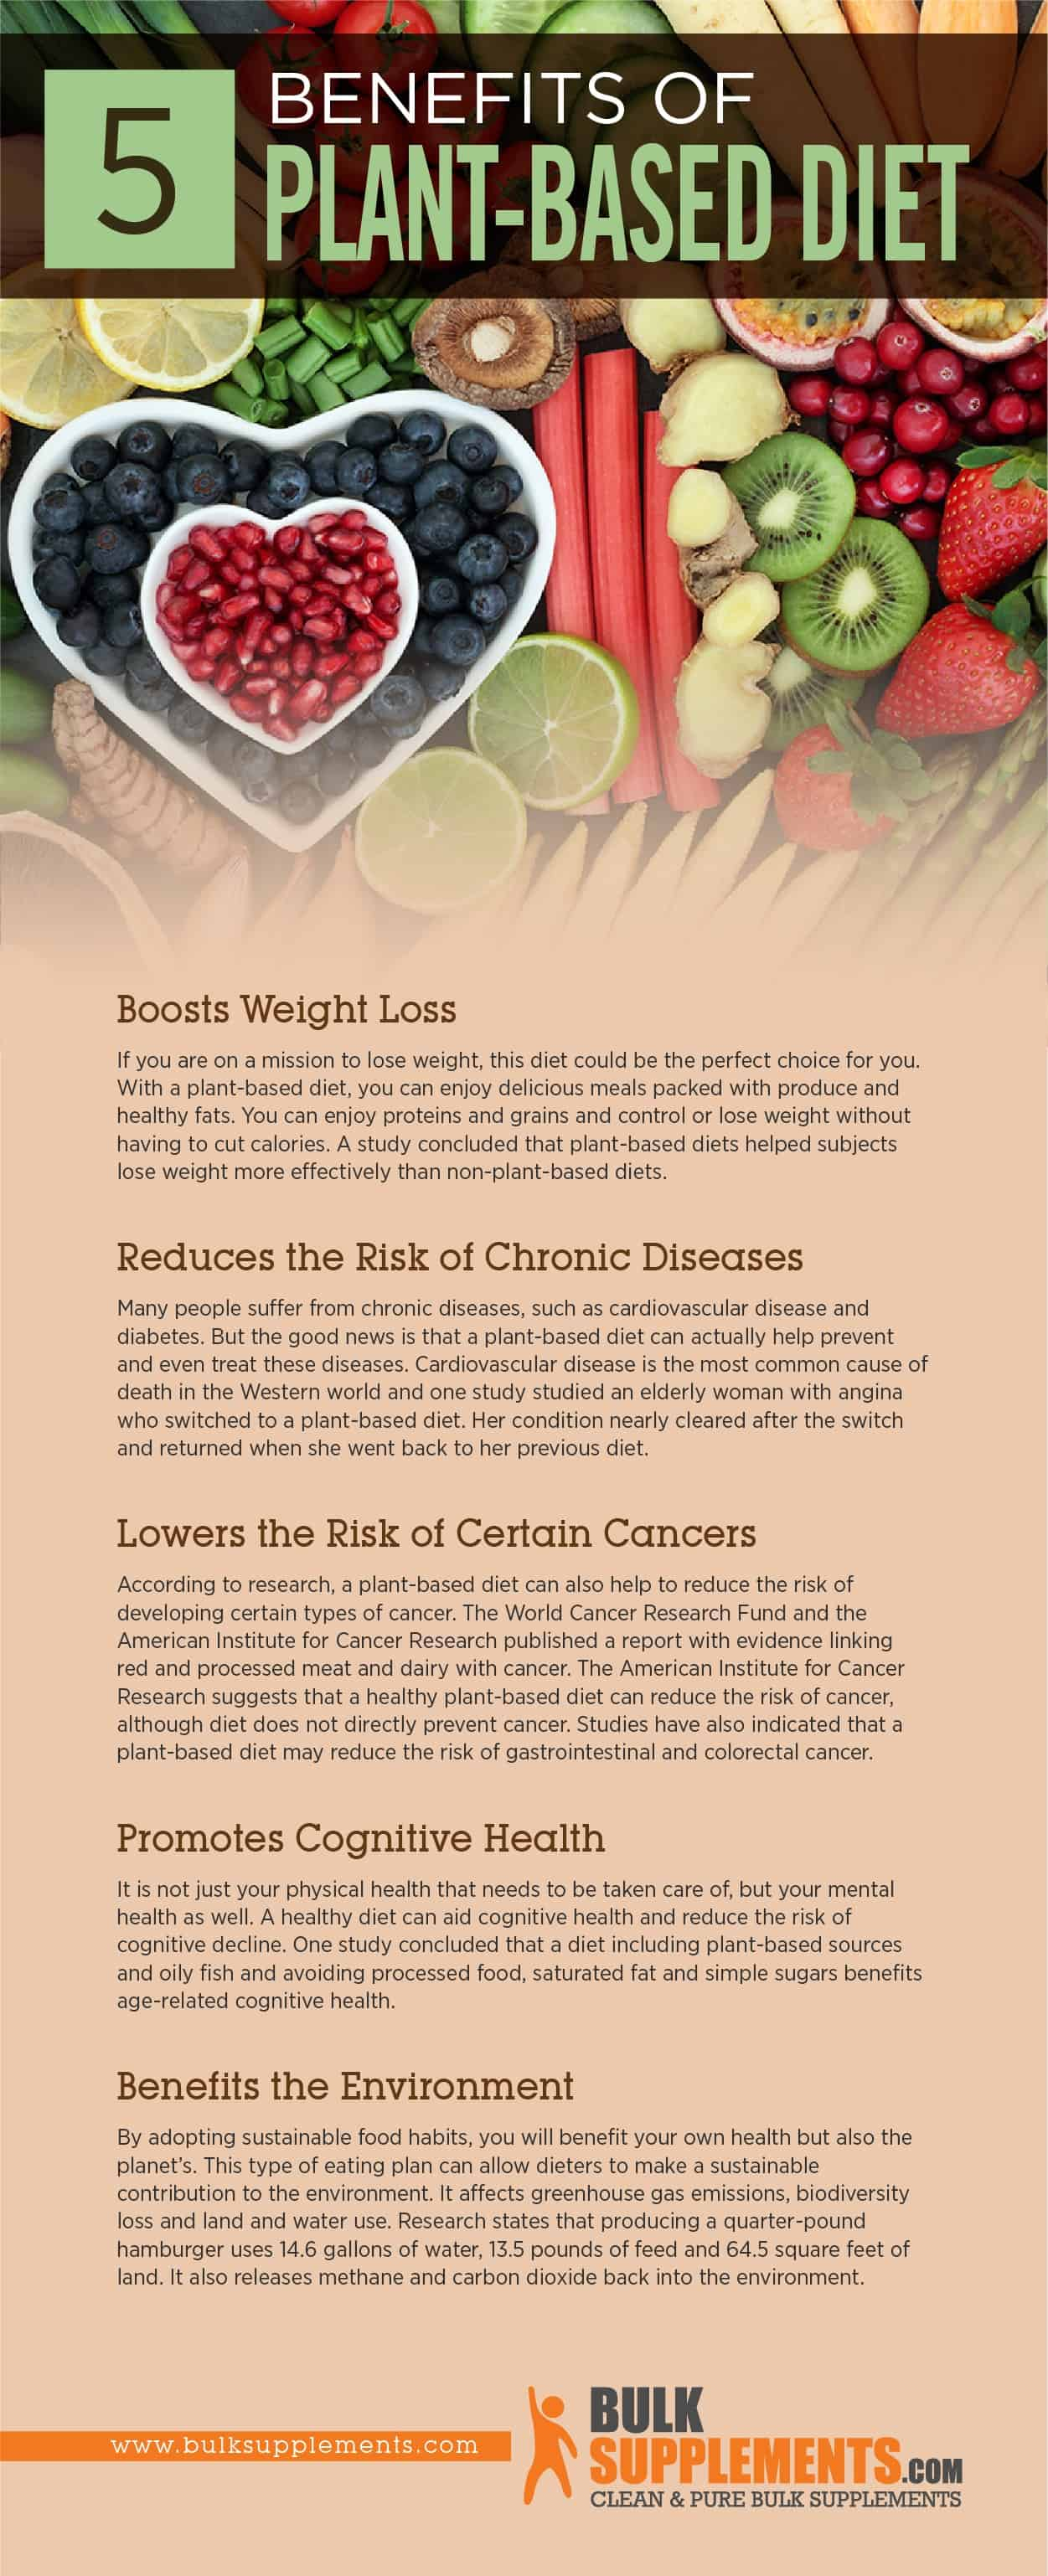 Plant-Based Diet Benefits